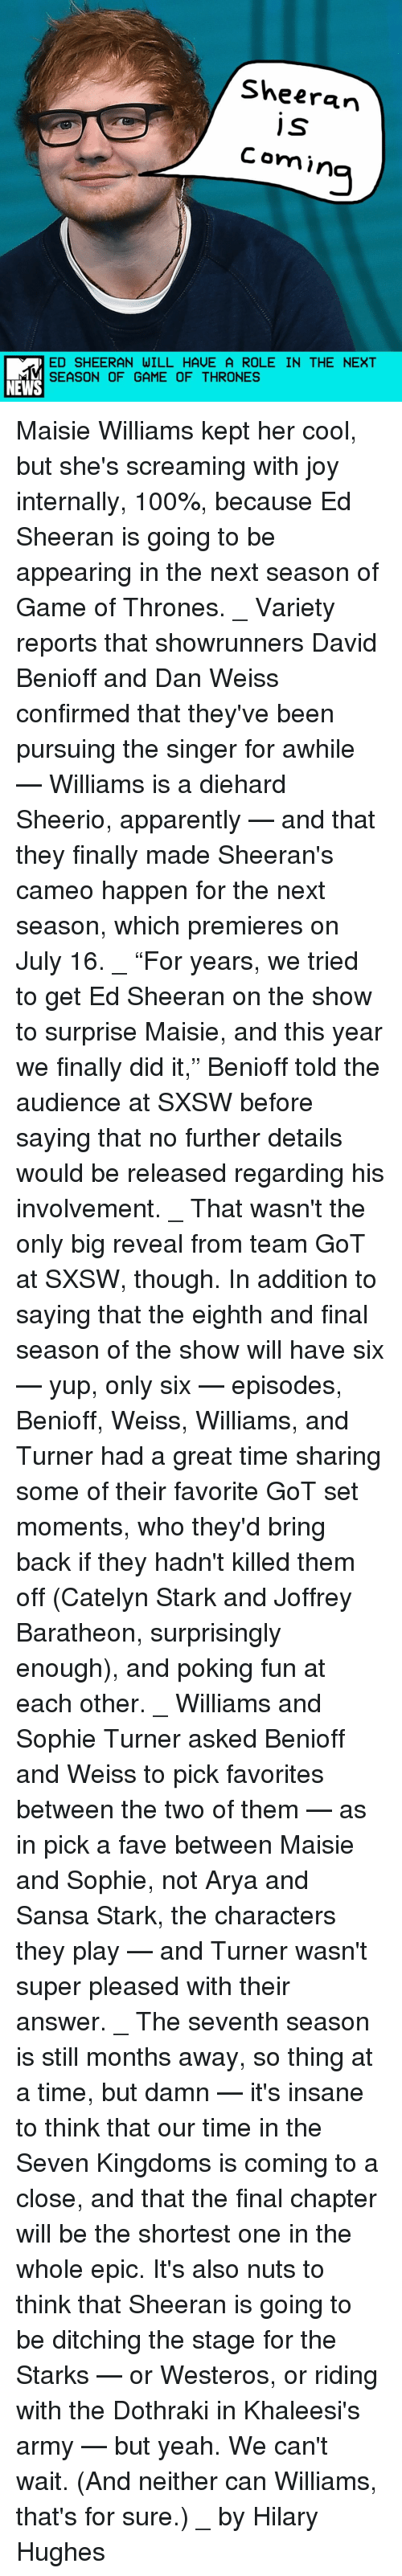 "Memes, Sansa Stark, and Catelyn Stark: Sheeran  j S  Comin  ED SHEERAN WILL HAVE A ROLE IN THE NEXT  SEASON OF GAME OF THRONES  NEWS Maisie Williams kept her cool, but she's screaming with joy internally, 100%, because Ed Sheeran is going to be appearing in the next season of Game of Thrones. _ Variety reports that showrunners David Benioff and Dan Weiss confirmed that they've been pursuing the singer for awhile — Williams is a diehard Sheerio, apparently — and that they finally made Sheeran's cameo happen for the next season, which premieres on July 16. _ ""For years, we tried to get Ed Sheeran on the show to surprise Maisie, and this year we finally did it,"" Benioff told the audience at SXSW before saying that no further details would be released regarding his involvement. _ That wasn't the only big reveal from team GoT at SXSW, though. In addition to saying that the eighth and final season of the show will have six — yup, only six — episodes, Benioff, Weiss, Williams, and Turner had a great time sharing some of their favorite GoT set moments, who they'd bring back if they hadn't killed them off (Catelyn Stark and Joffrey Baratheon, surprisingly enough), and poking fun at each other. _ Williams and Sophie Turner asked Benioff and Weiss to pick favorites between the two of them — as in pick a fave between Maisie and Sophie, not Arya and Sansa Stark, the characters they play — and Turner wasn't super pleased with their answer. _ The seventh season is still months away, so thing at a time, but damn — it's insane to think that our time in the Seven Kingdoms is coming to a close, and that the final chapter will be the shortest one in the whole epic. It's also nuts to think that Sheeran is going to be ditching the stage for the Starks — or Westeros, or riding with the Dothraki in Khaleesi's army — but yeah. We can't wait. (And neither can Williams, that's for sure.) _ by Hilary Hughes"